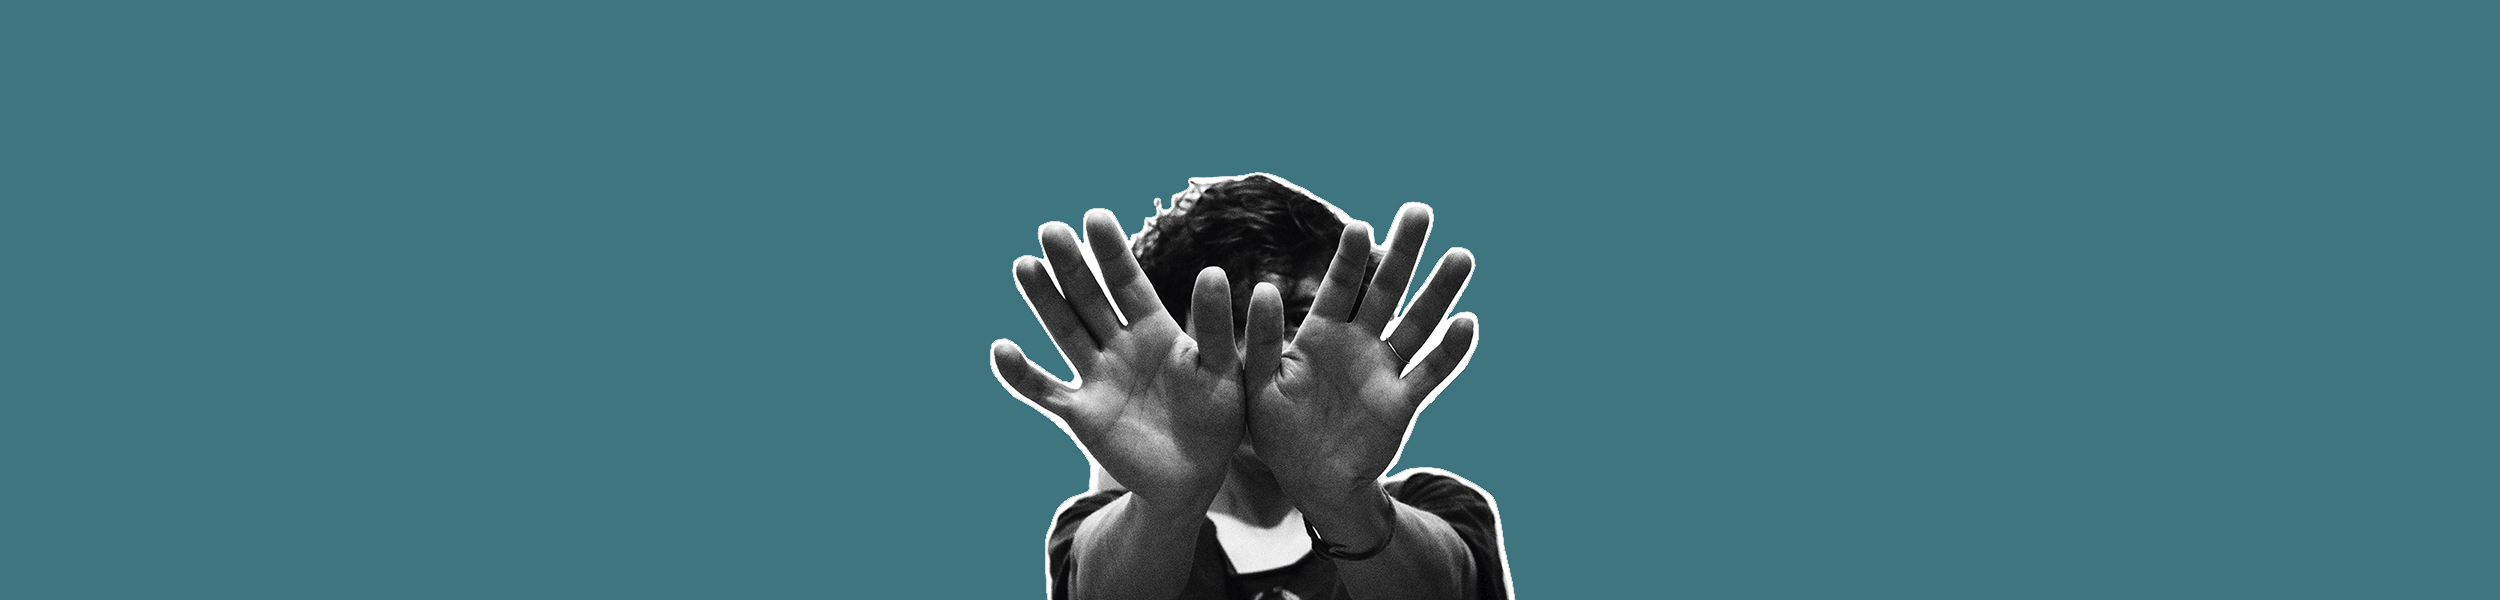 Tune-Yards - New Album, 'I can feel you creep into my private life'.